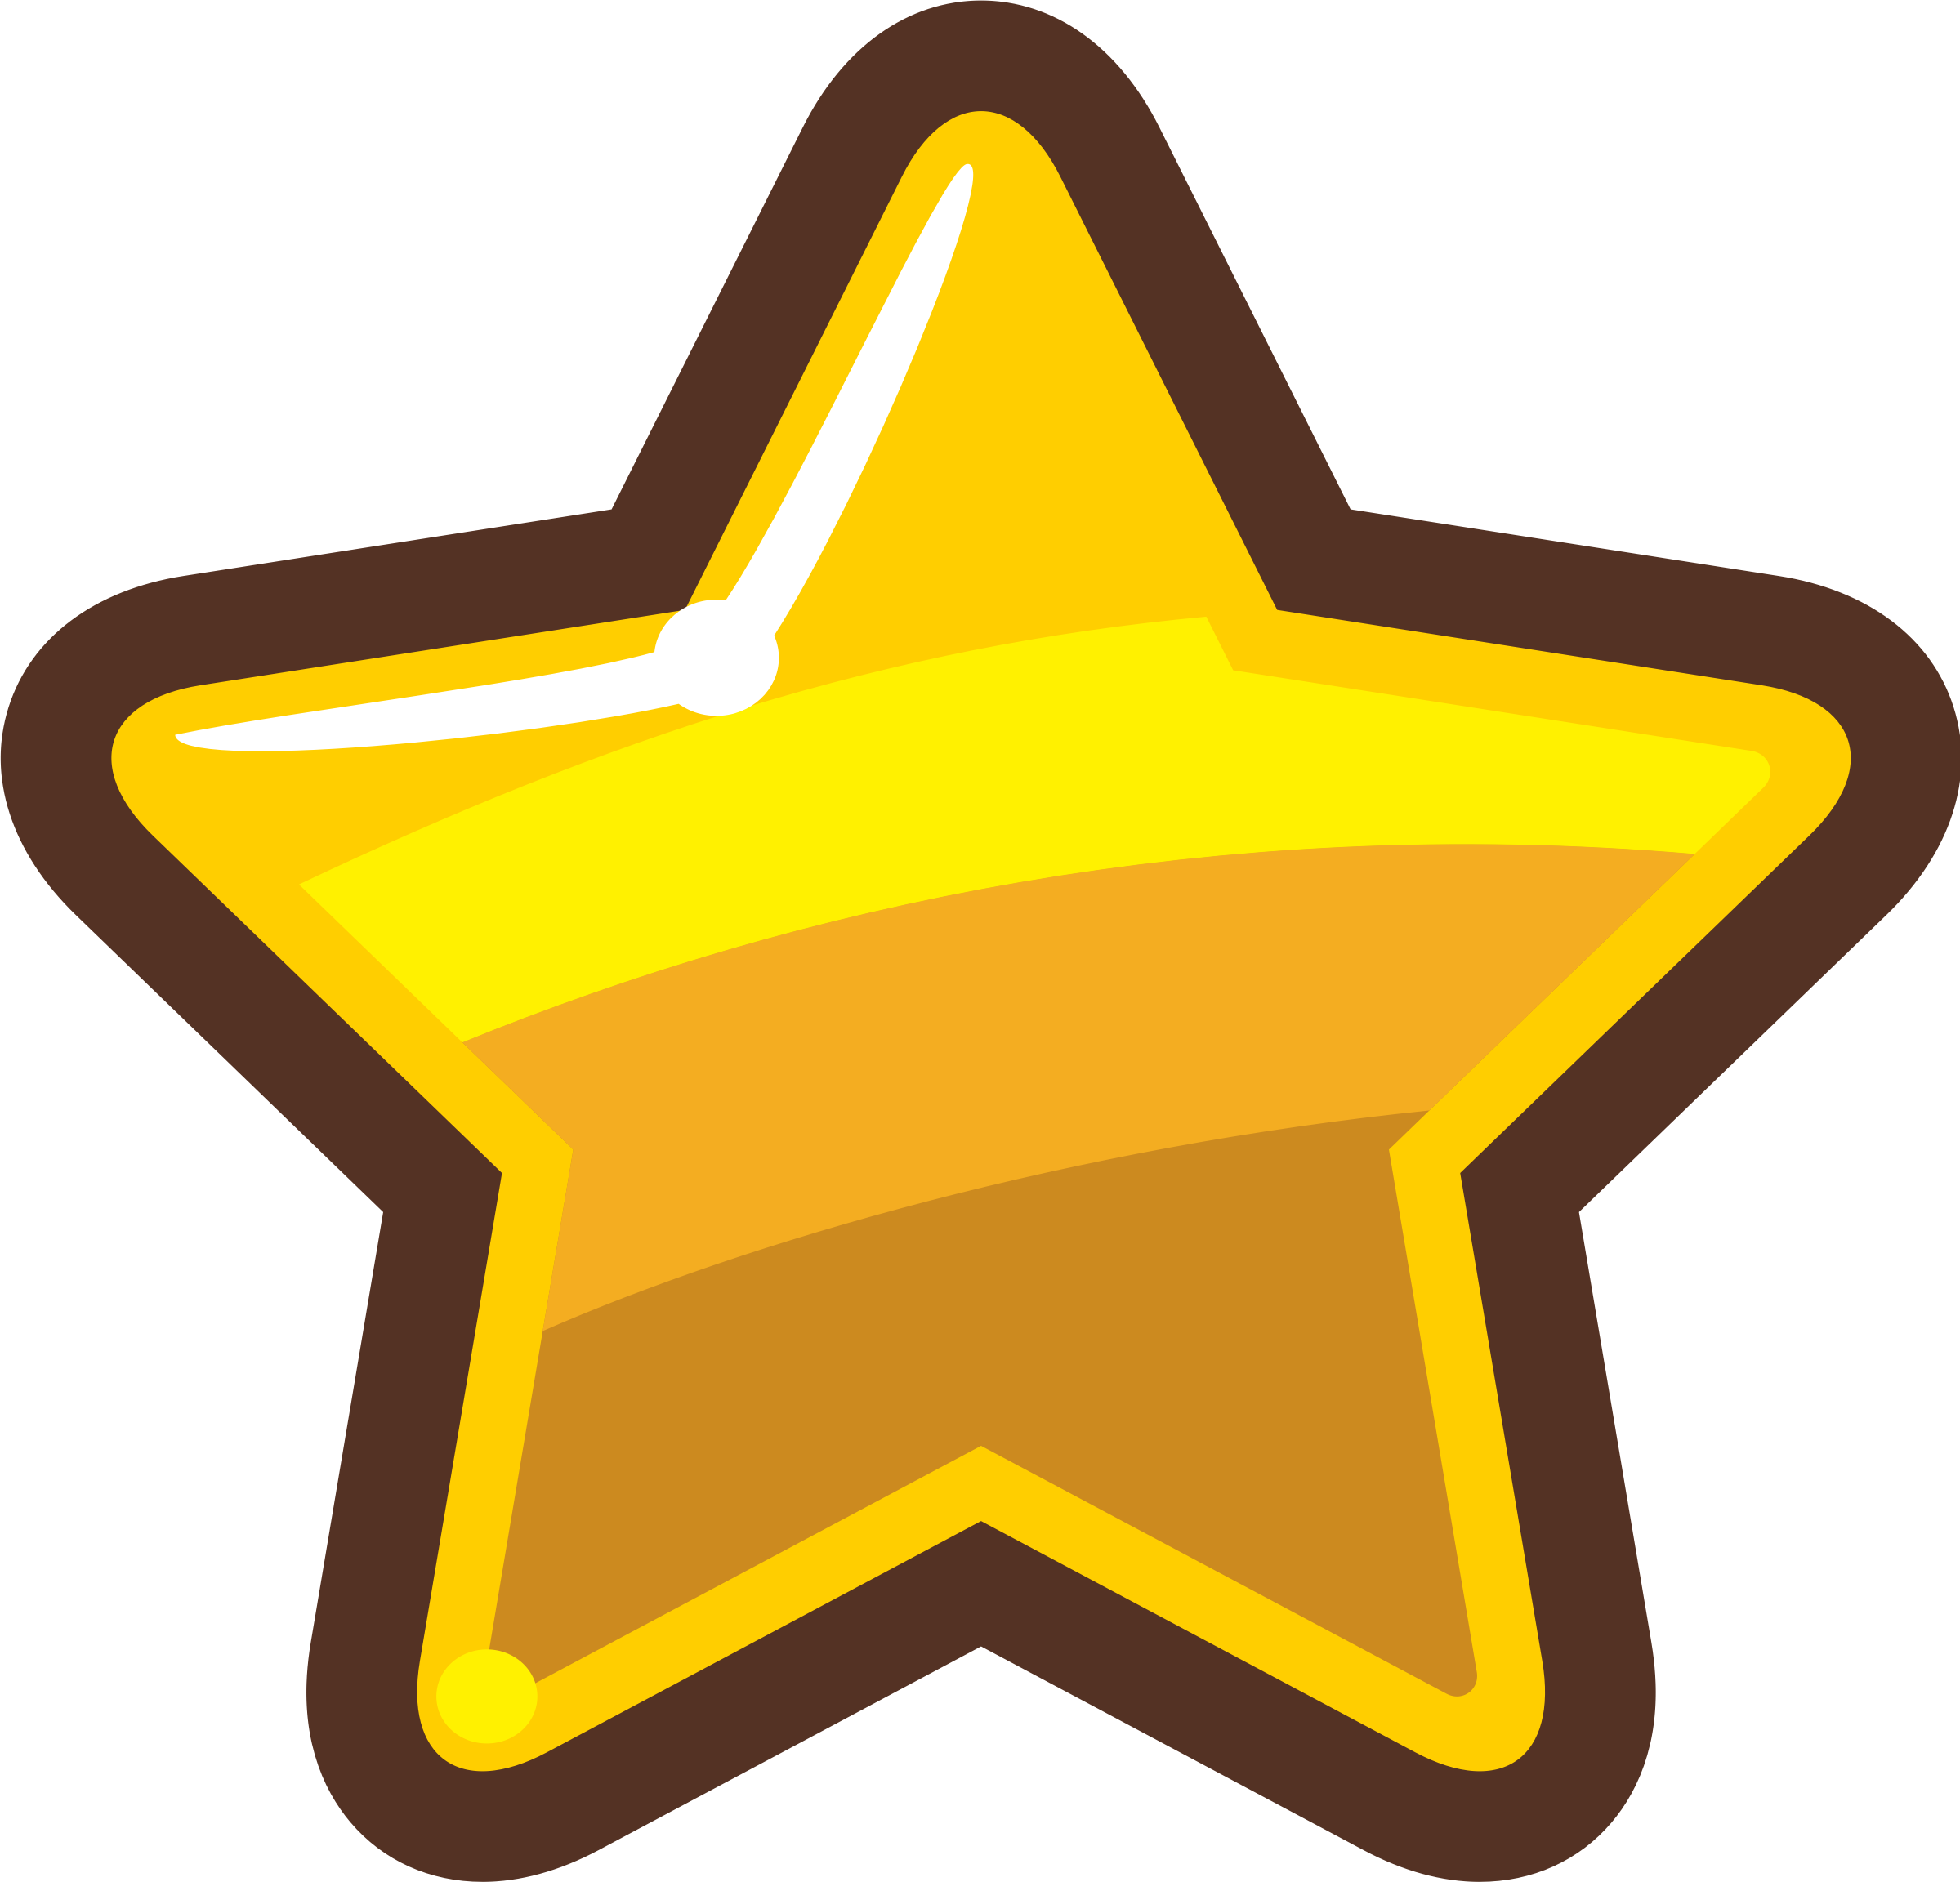 Star cartoon png. Gold icons free and